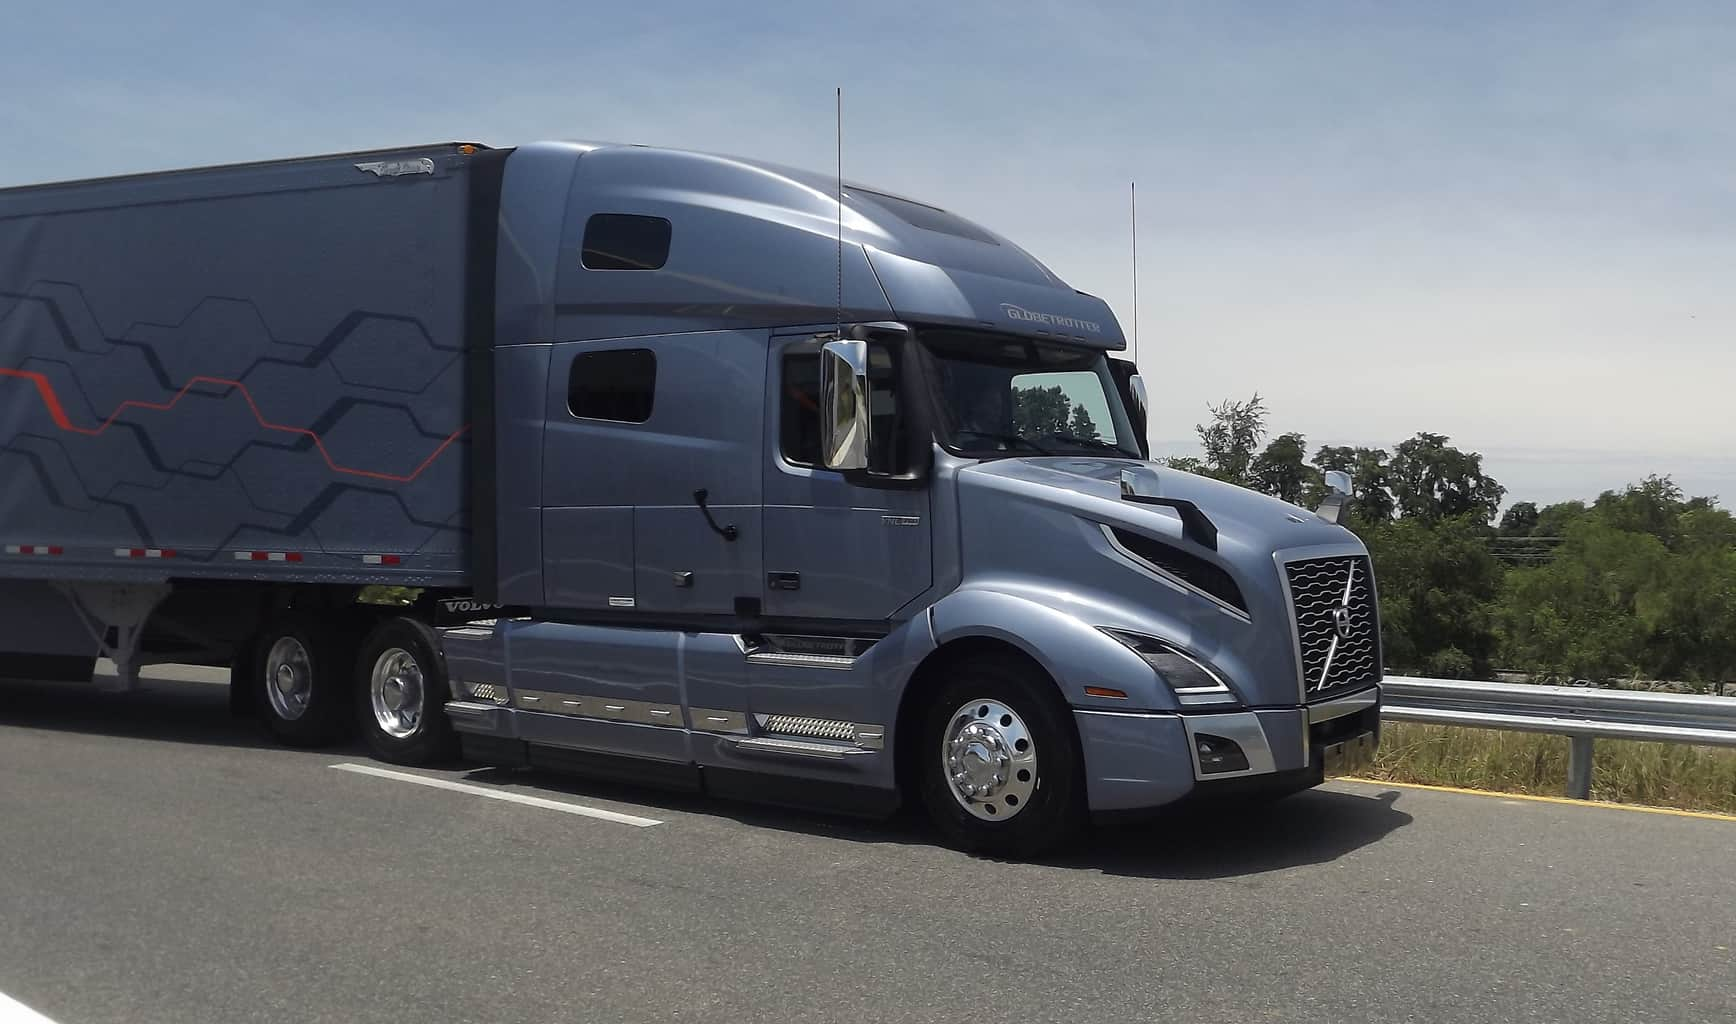 Volvo's new VNL series designed for driver comfort, safety, and a